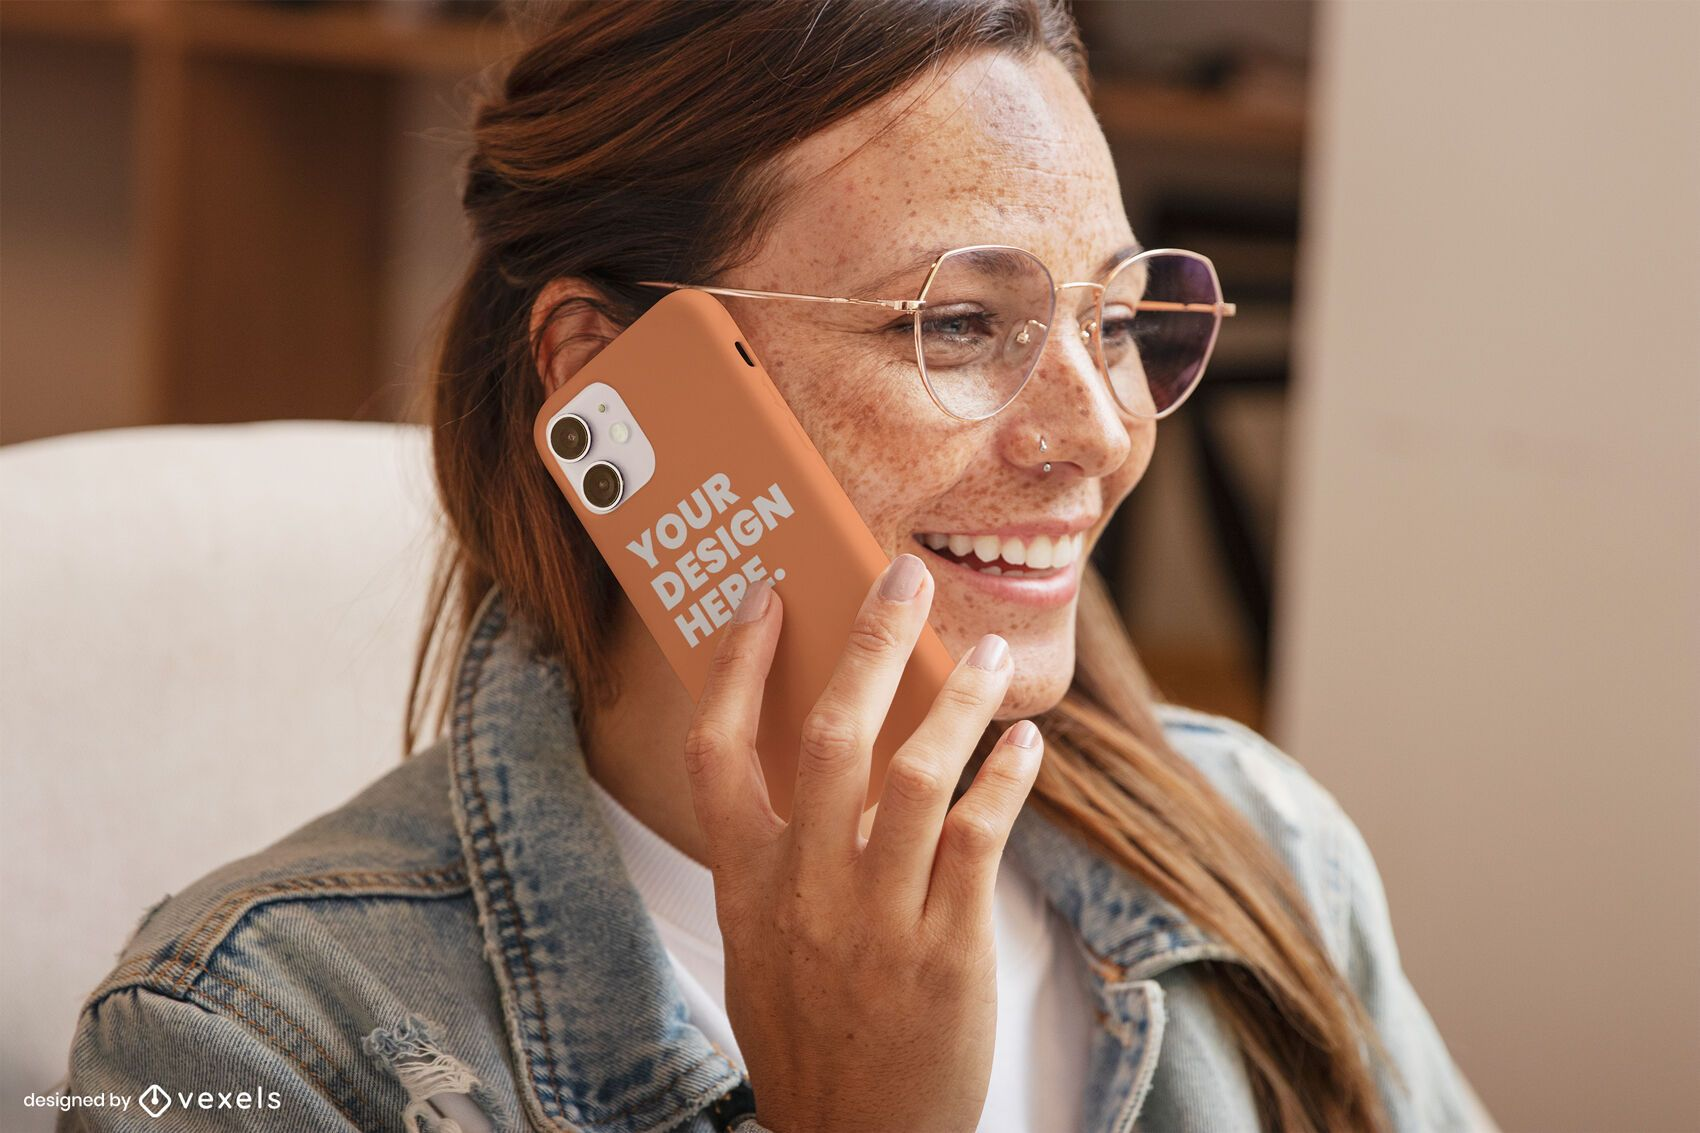 Girl with glasses laughing phone case mockup